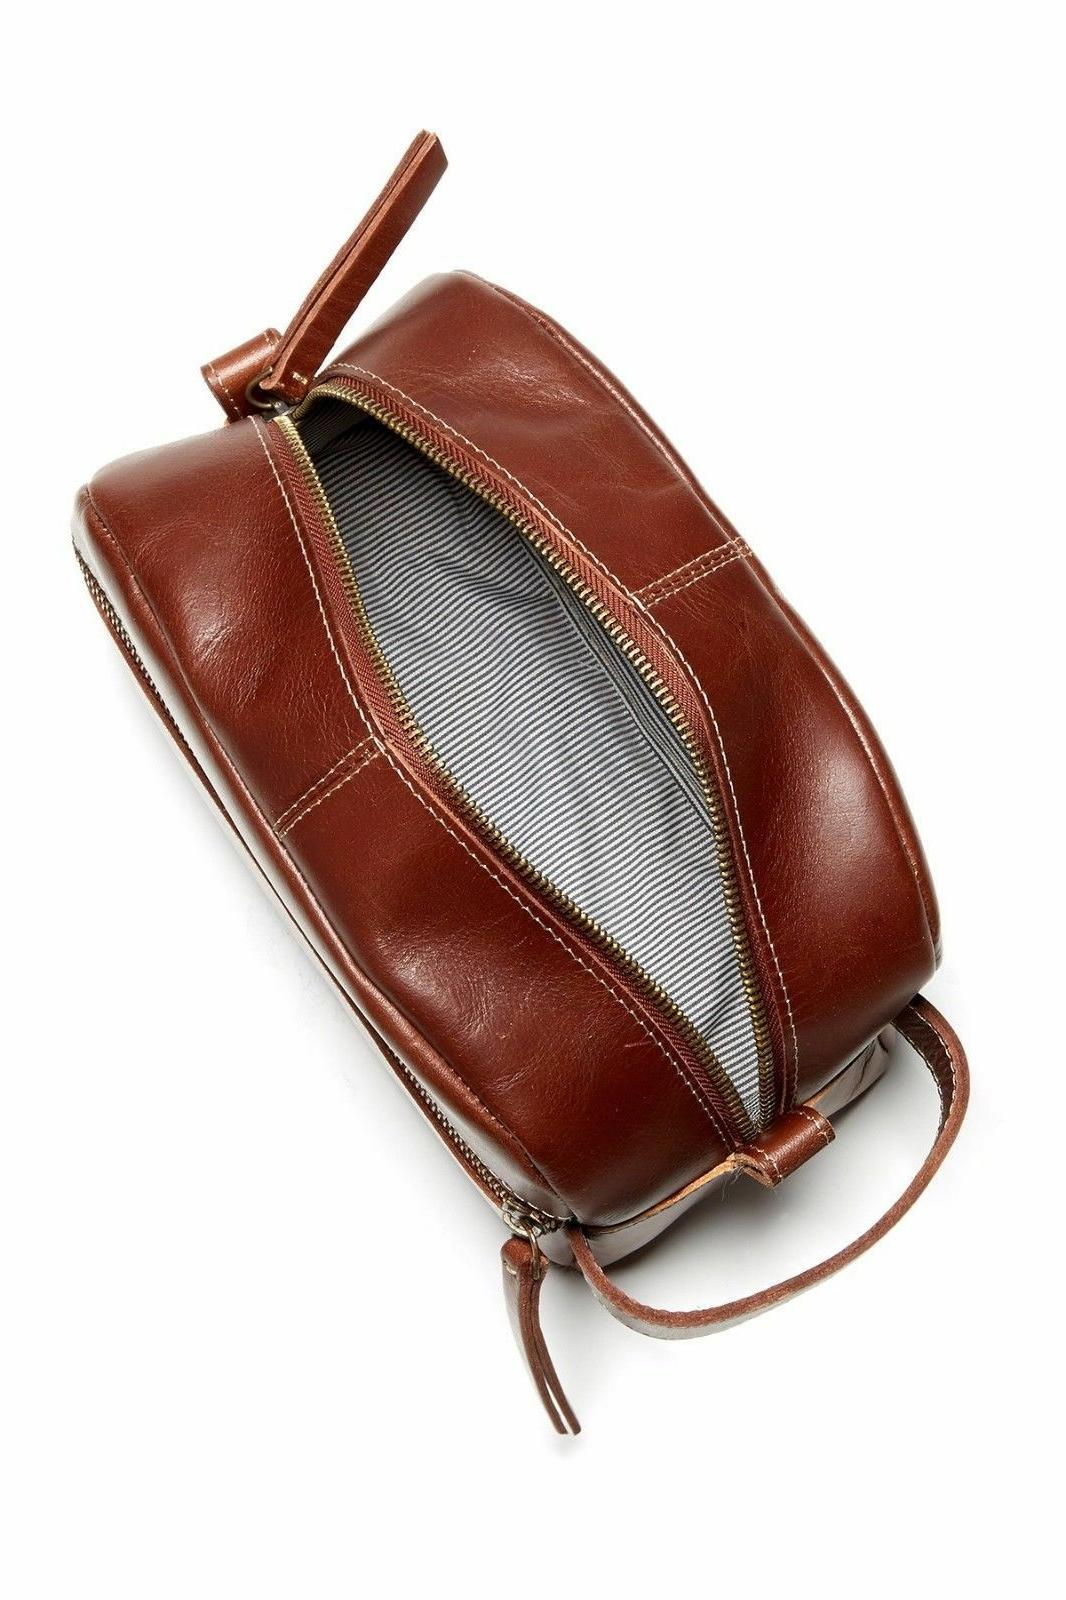 Timberland NEVADA LEATHER TRAVEL KIT TOILETRY BAG Cognac NP0353-35